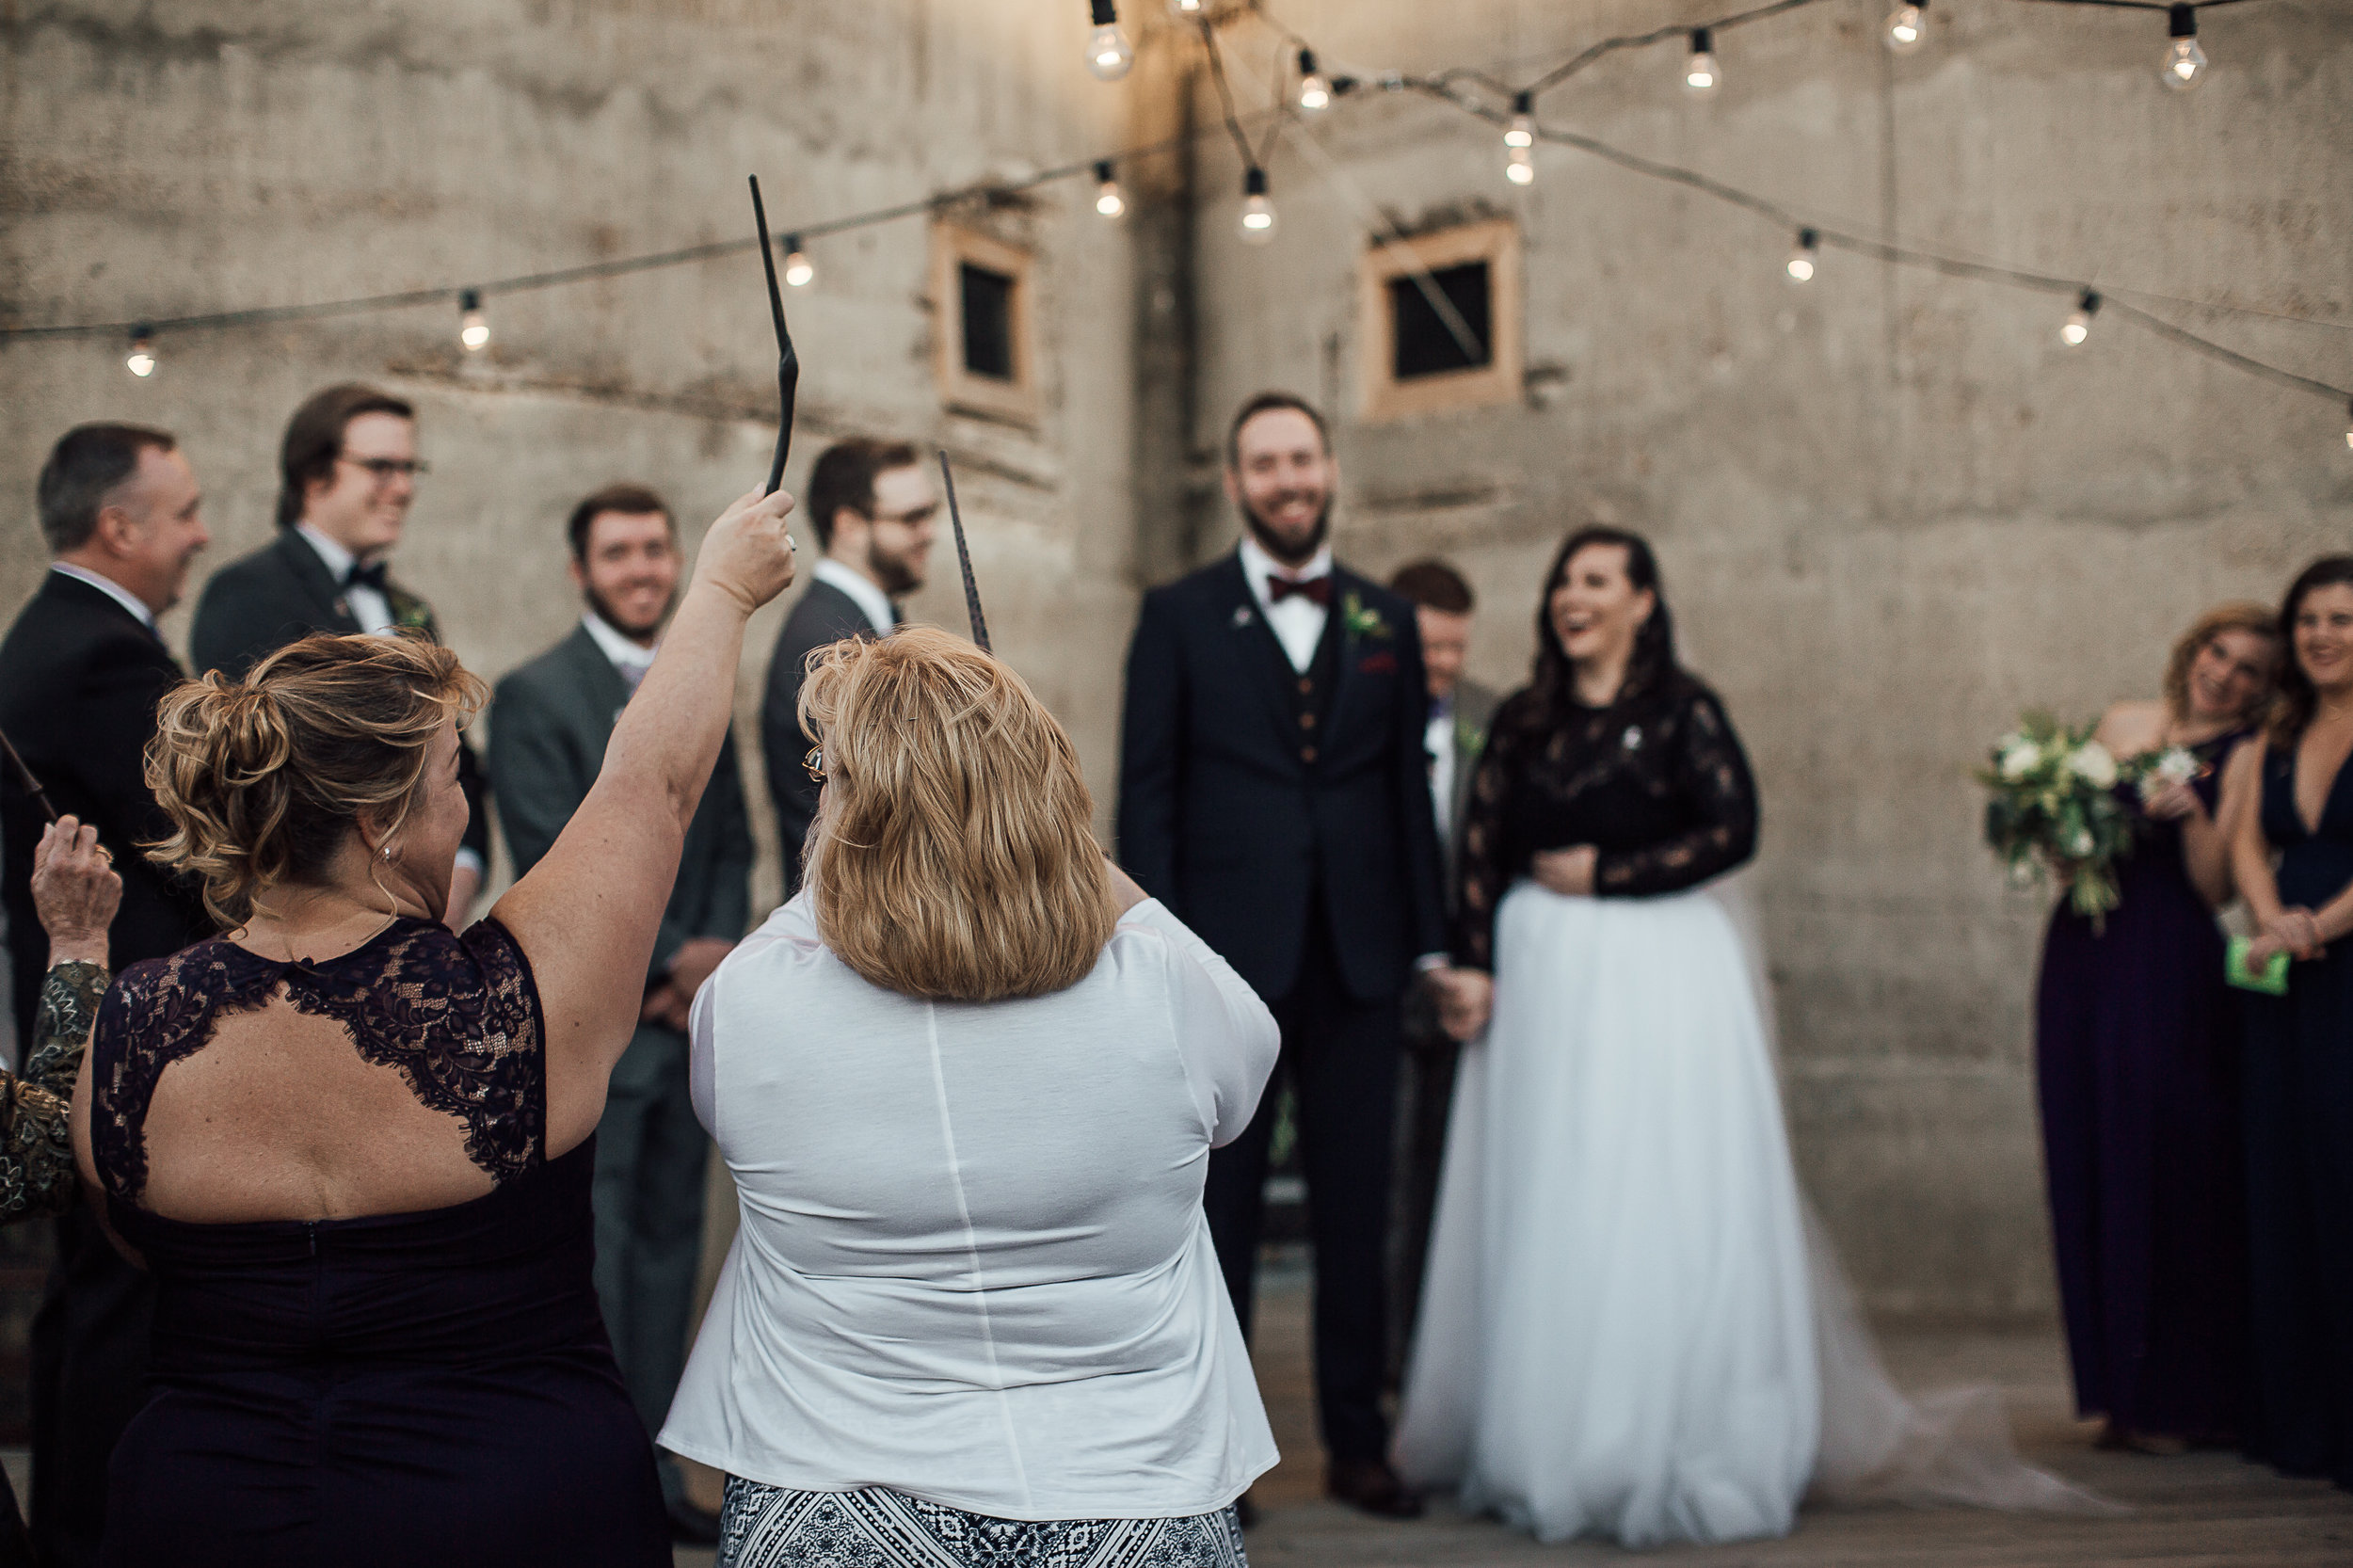 memphis-wedding-photographer-wiseacre-brewing-cassie-cook-photography-21.jpg